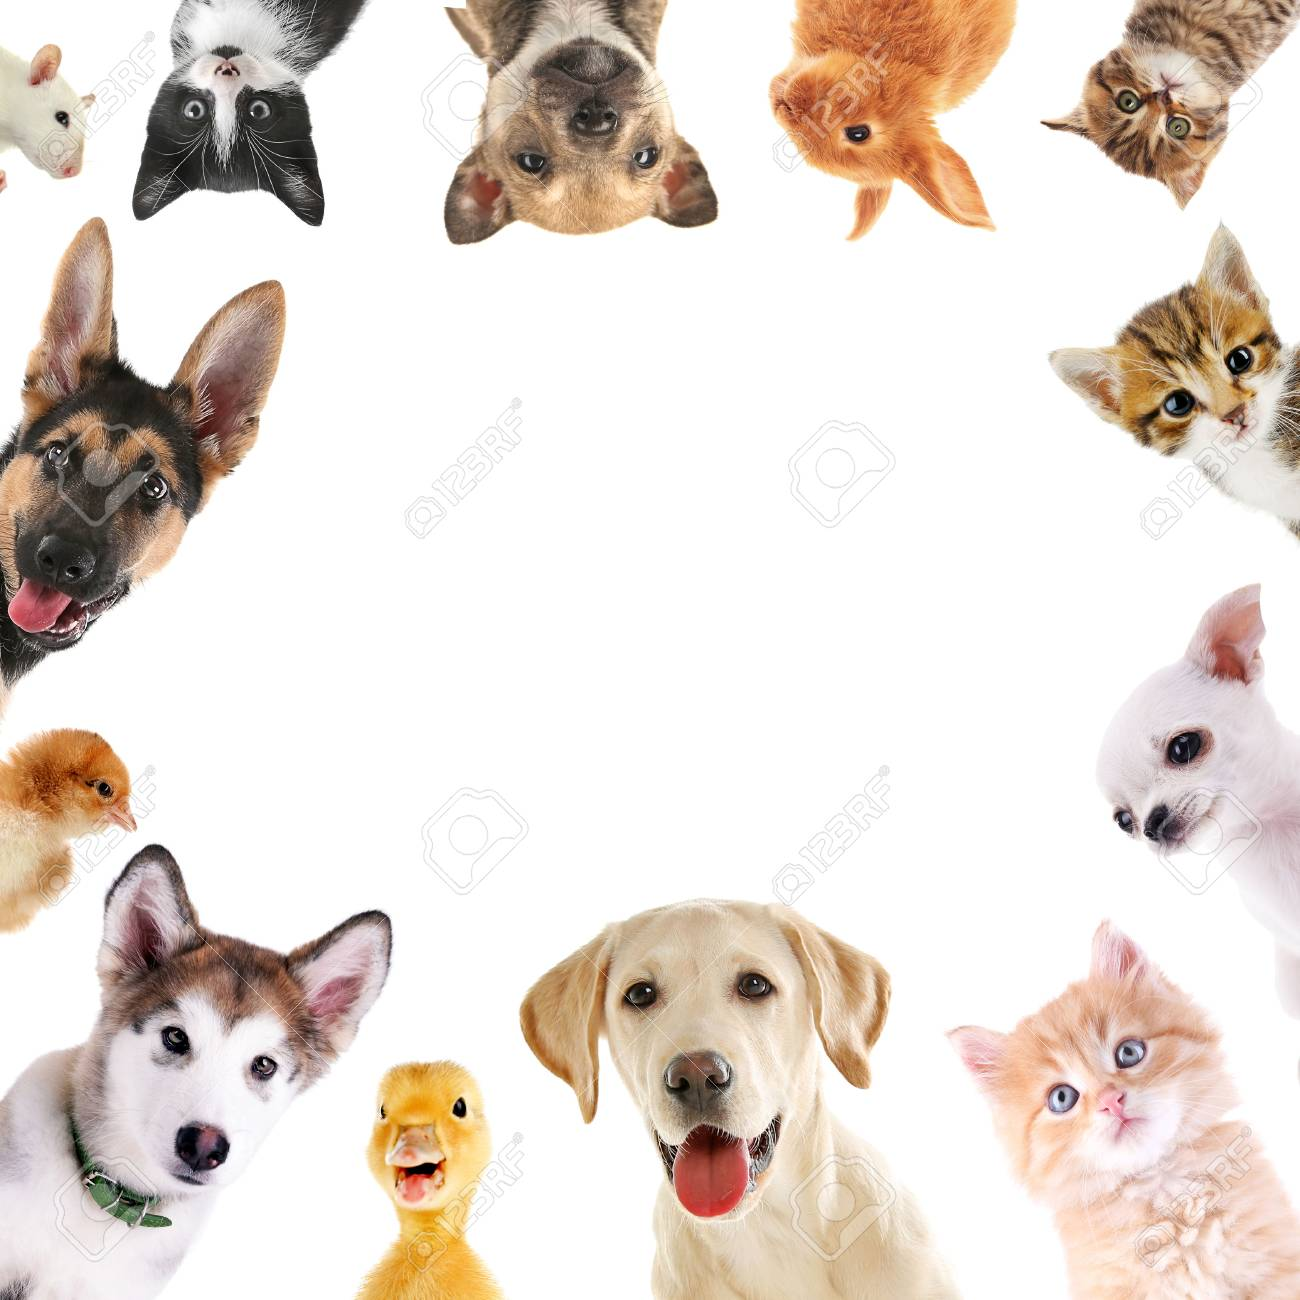 Collage Of Cute Baby Animals On White Background Stock Photo